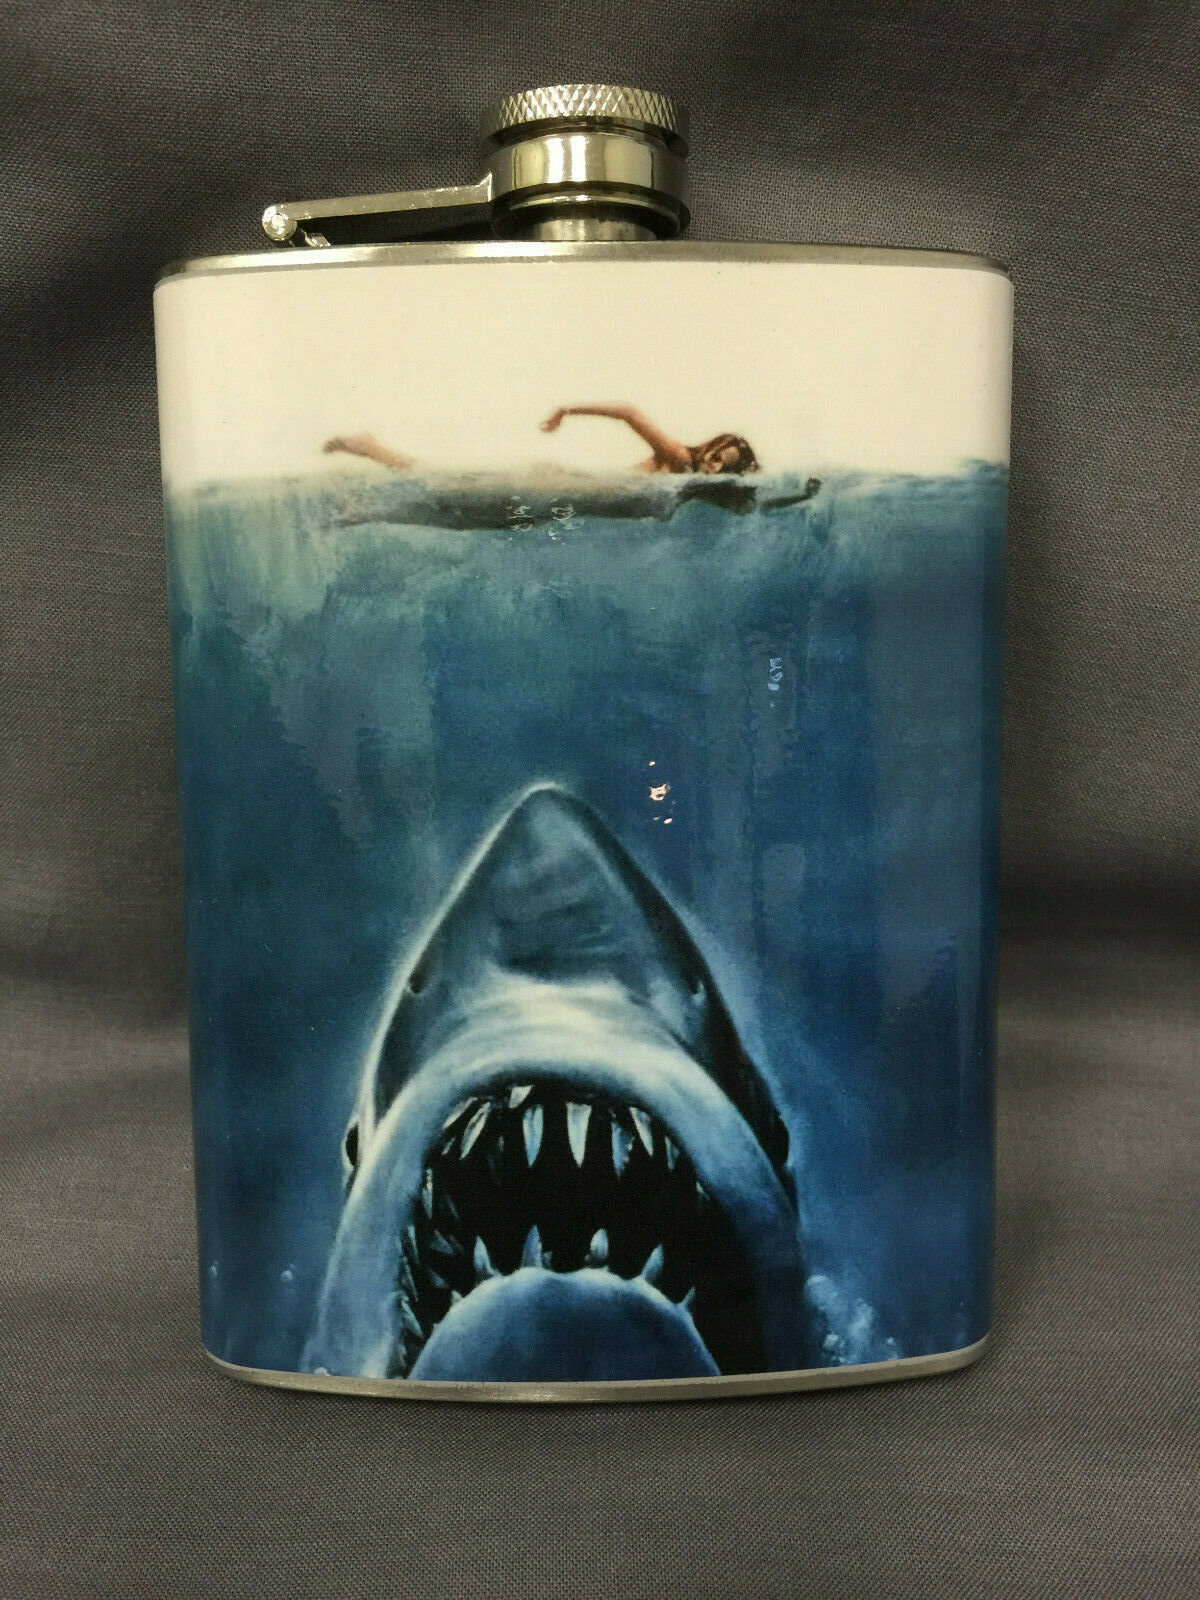 Shark Attack Jaws Flask 8oz Stainless Steel Drinking Clearance item